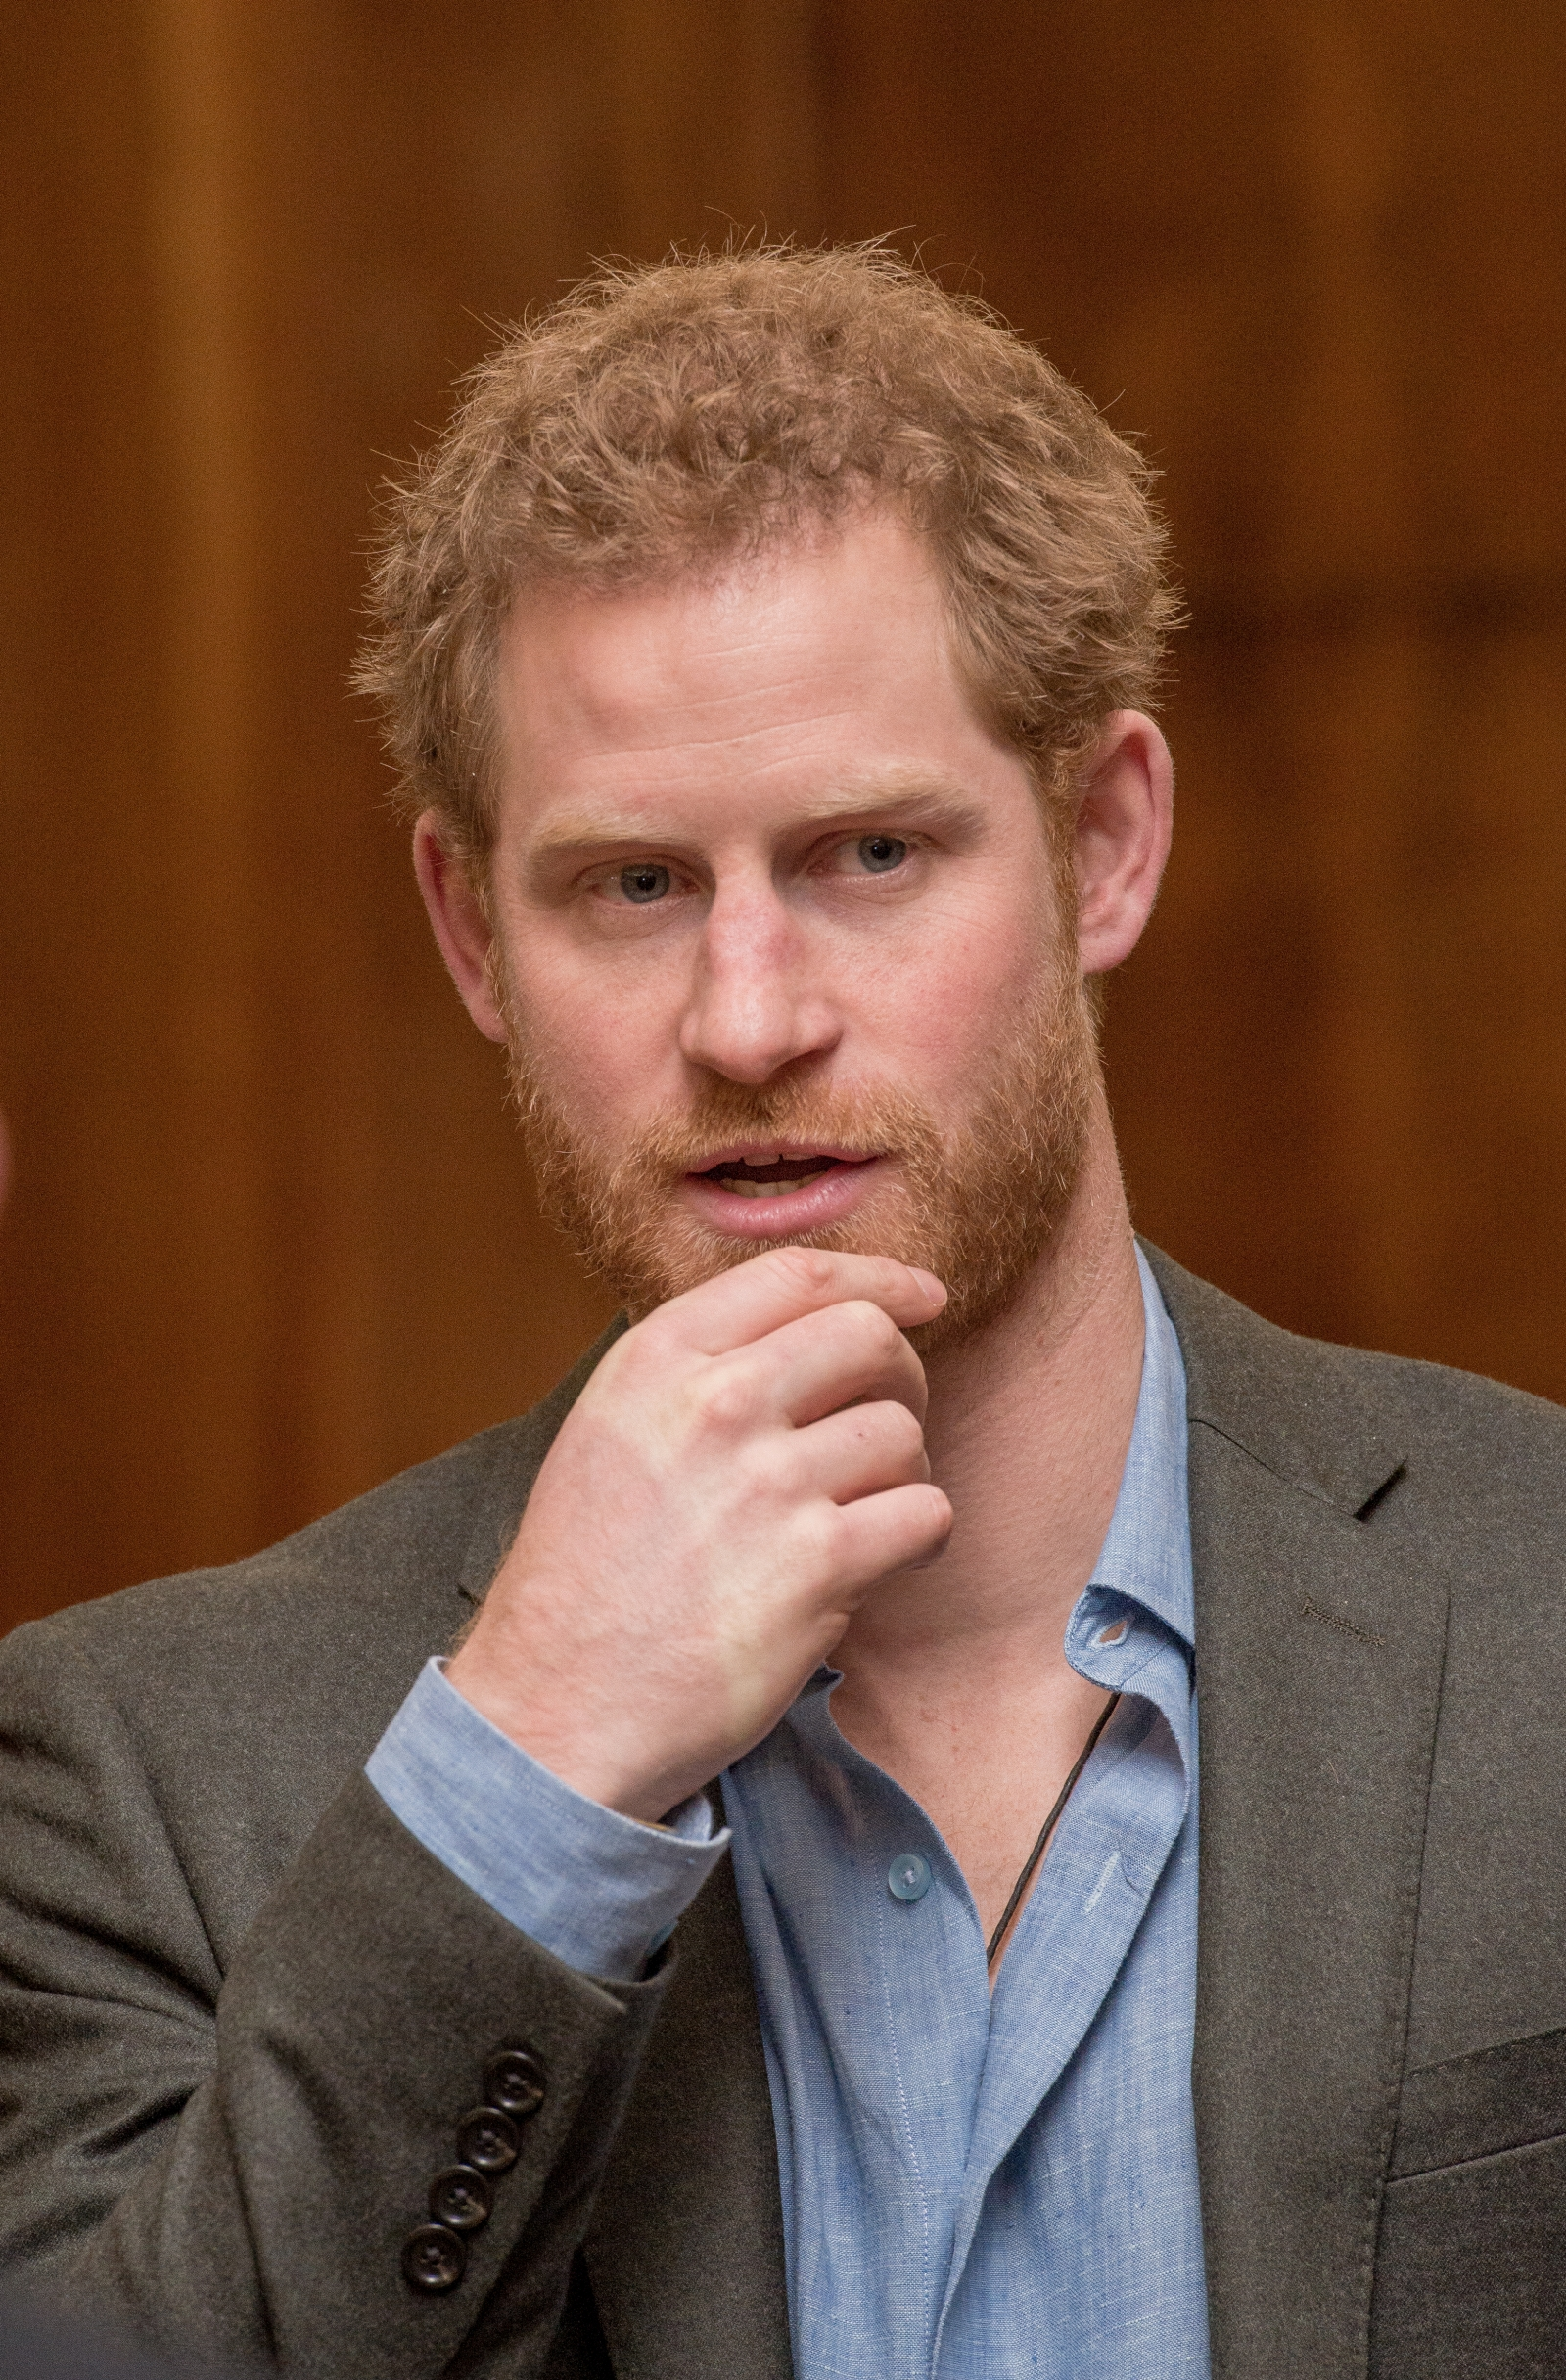 Selfie Prince Harry  nudes (82 photo), Twitter, underwear